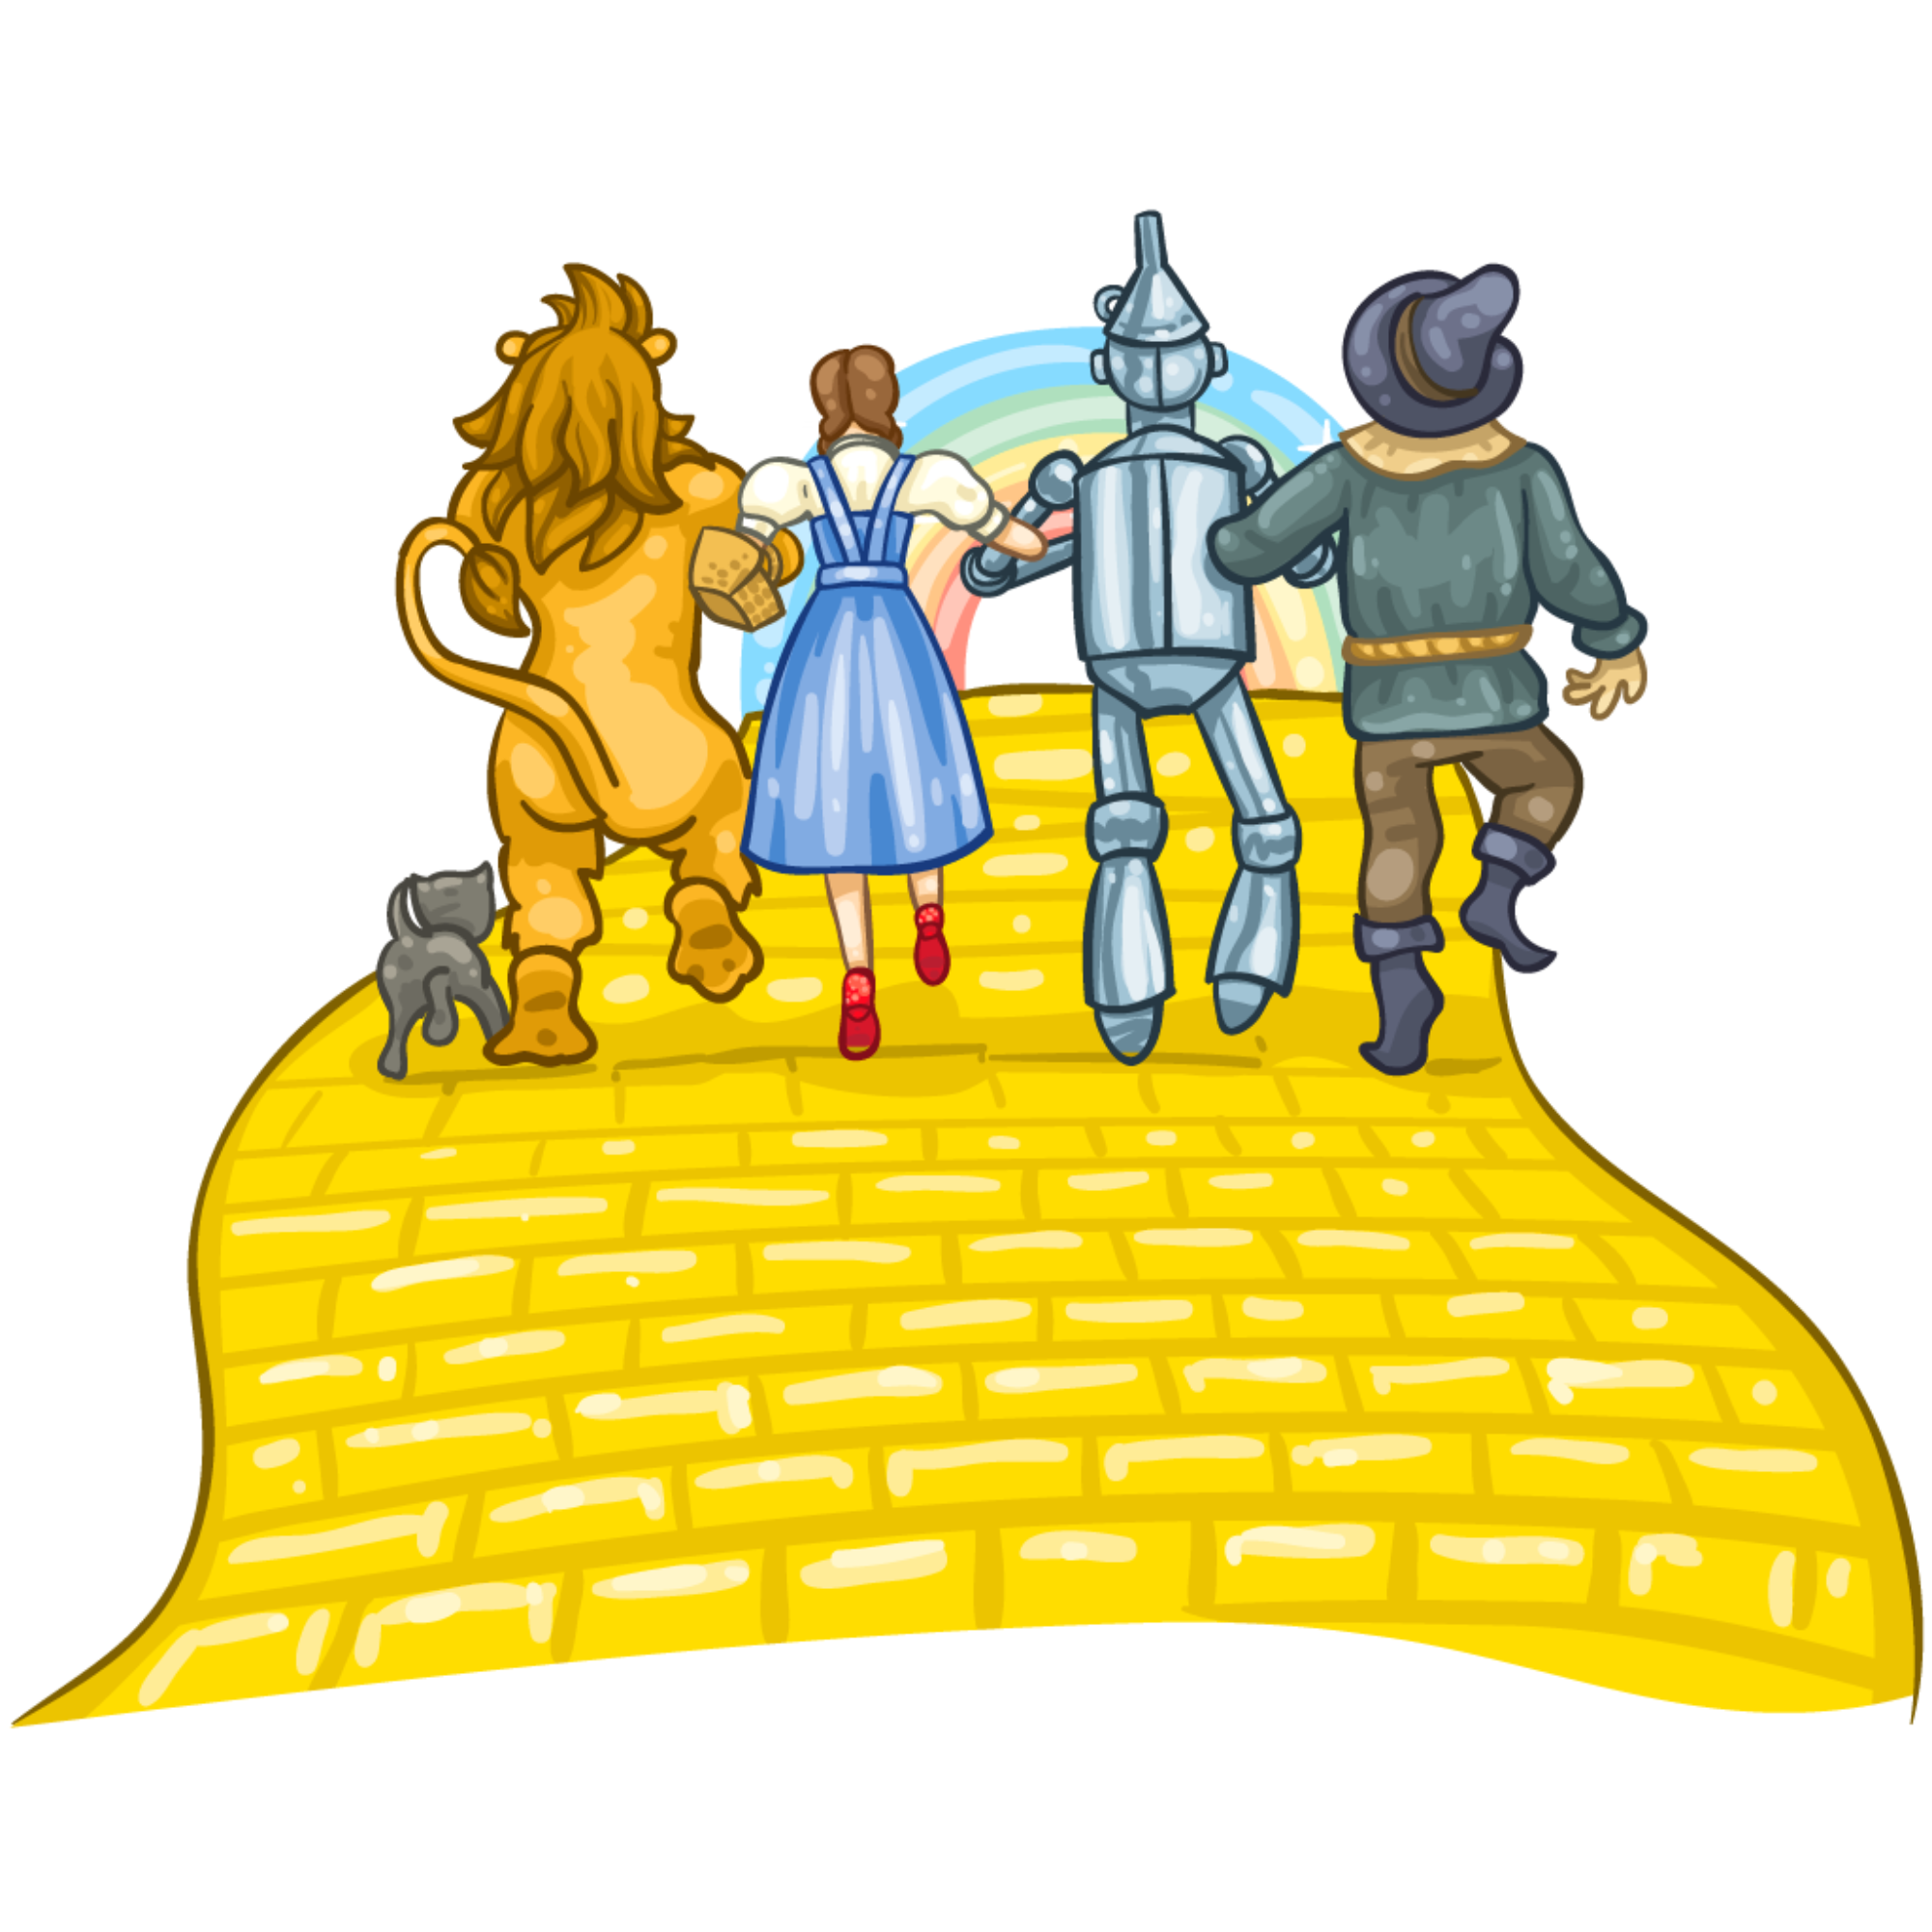 Wizard of oz border clipart graphic freeuse stock Wizard Of Oz Clipart Yellow Brick Road | Free download best Wizard ... graphic freeuse stock